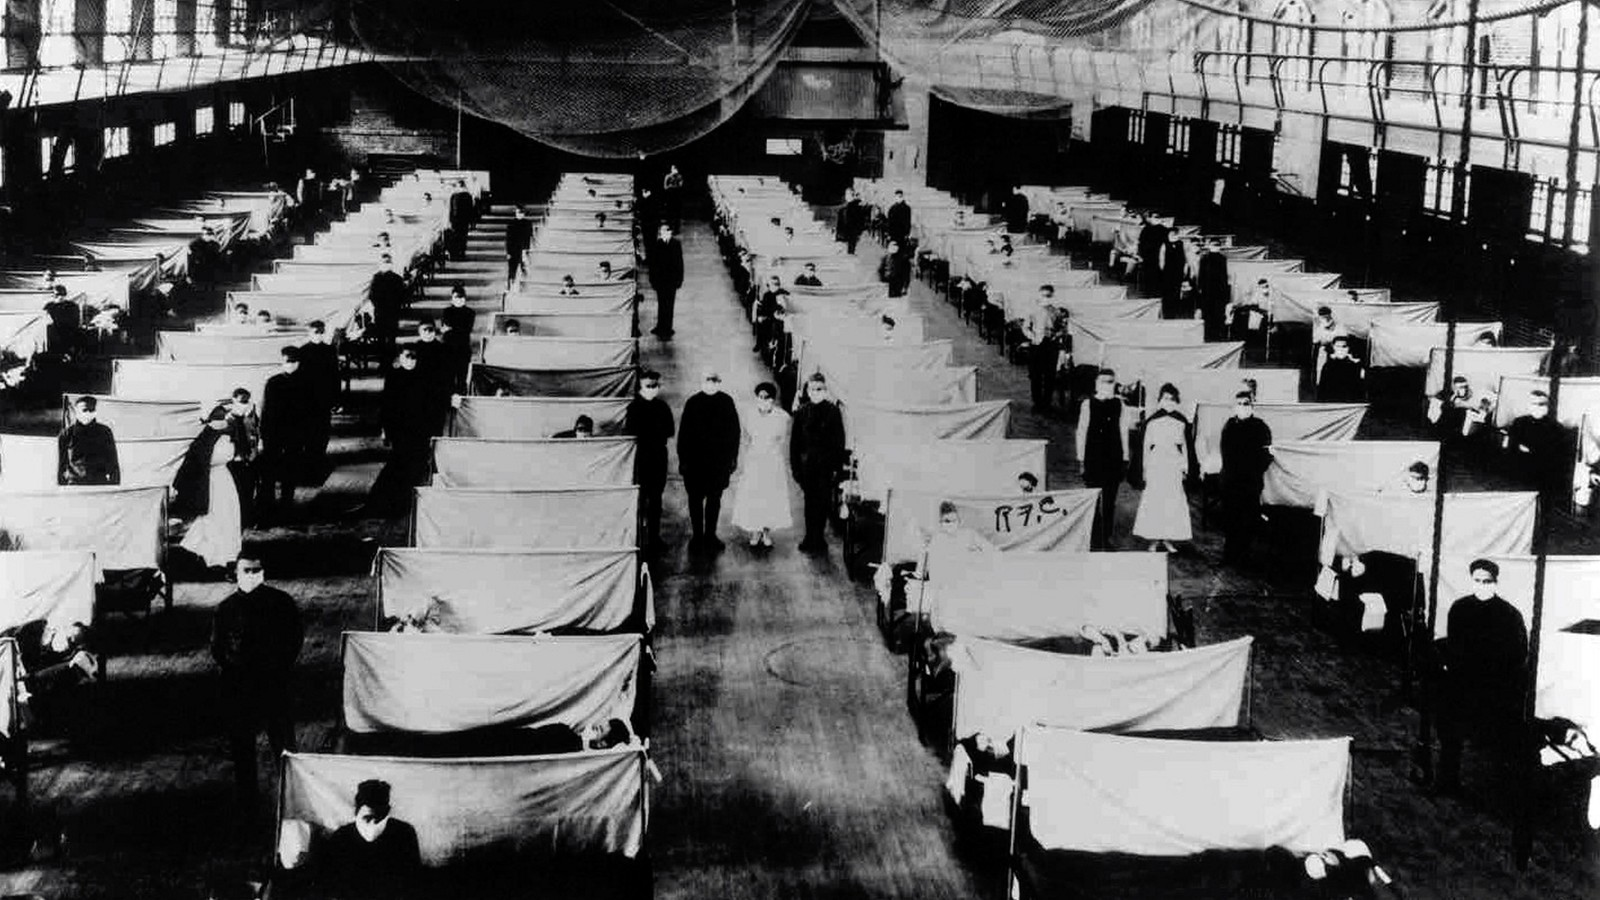 Lung Samples From 1918 Show a Pandemic Virus Mutating - The Atlantic